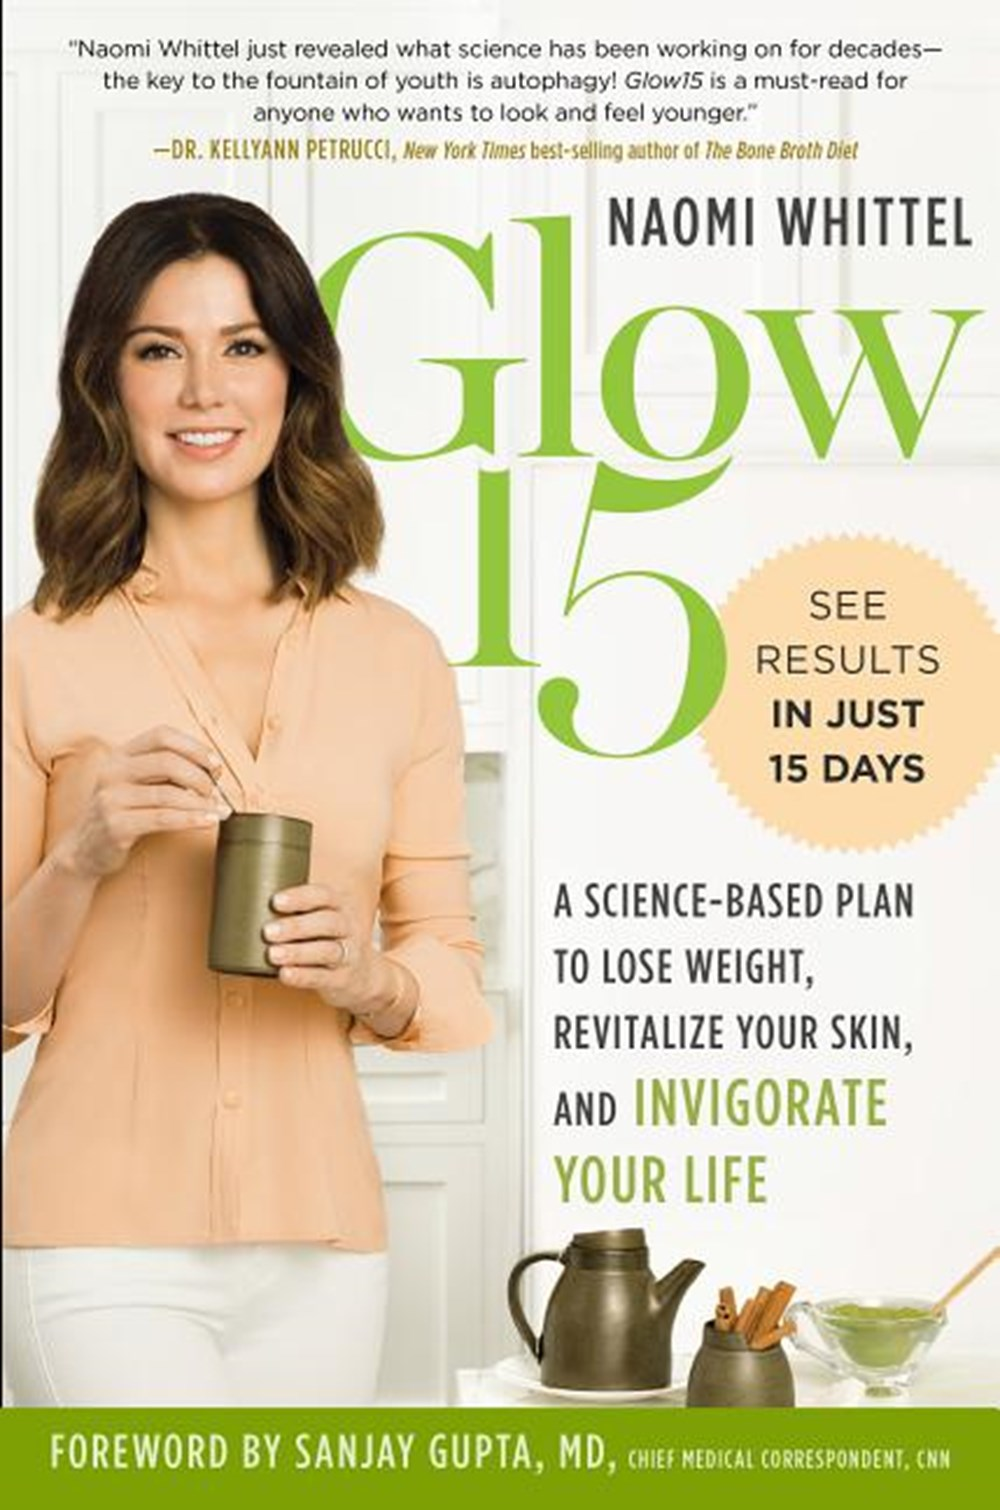 Glow15 A Science-Based Plan to Lose Weight, Revitalize Your Skin, and Invigorate Your Life